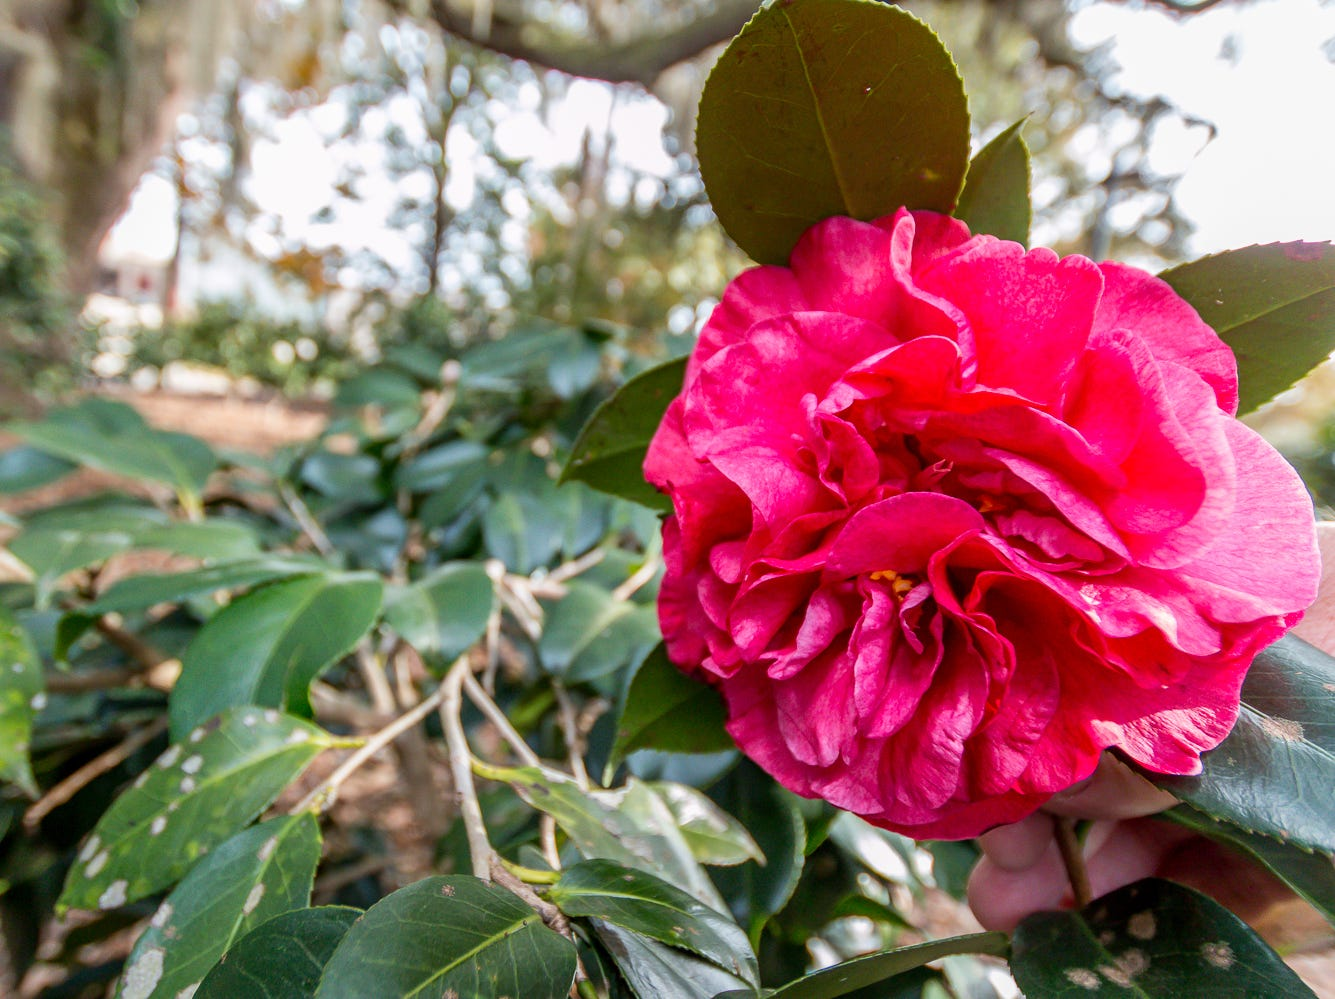 A blooming Seville Square camellia is on display in the University of West Florida's Camellia Garden on Wednesday, November 28, 2018. The garden is located just east of Building 41 for Pyschology and Behavioral Sciences.